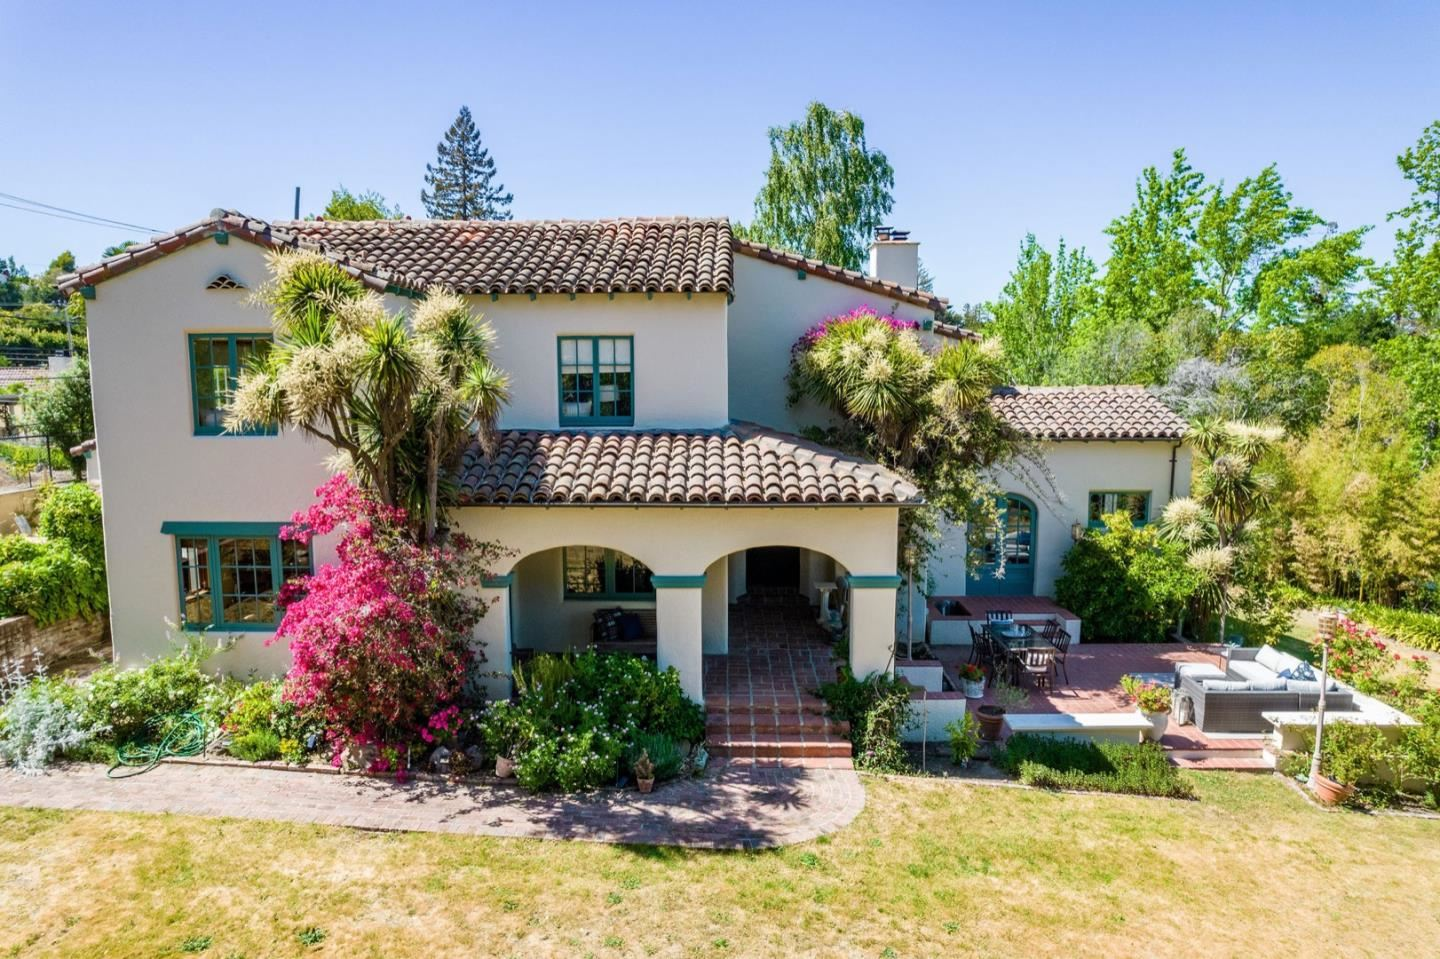 1010 San Raymundo Road, Hillsborough, CA 94010 - #: ML81843307